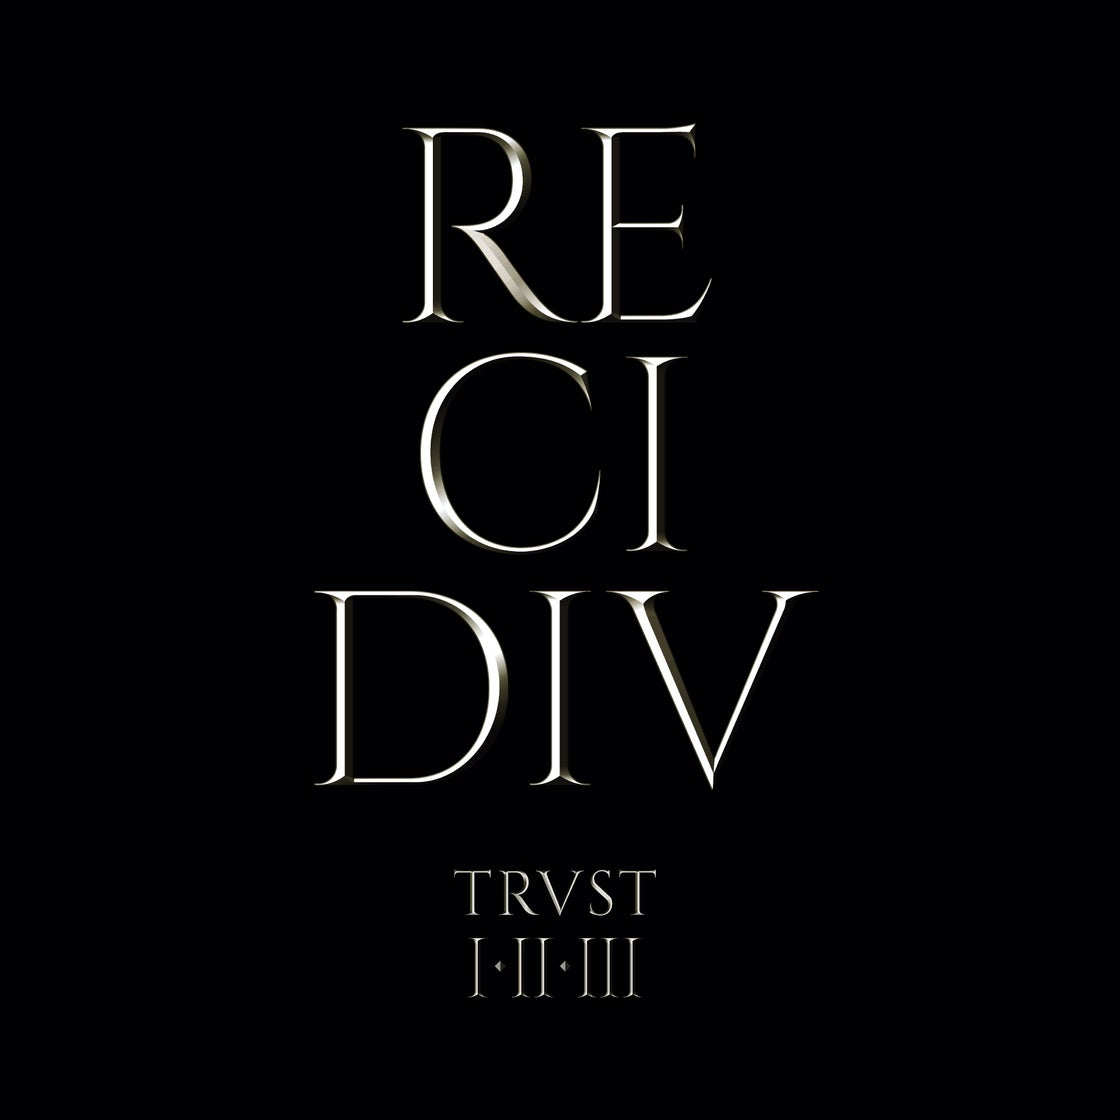 Image of TRUST - RE.CI.DIV - Coffret 4CD/4DVD